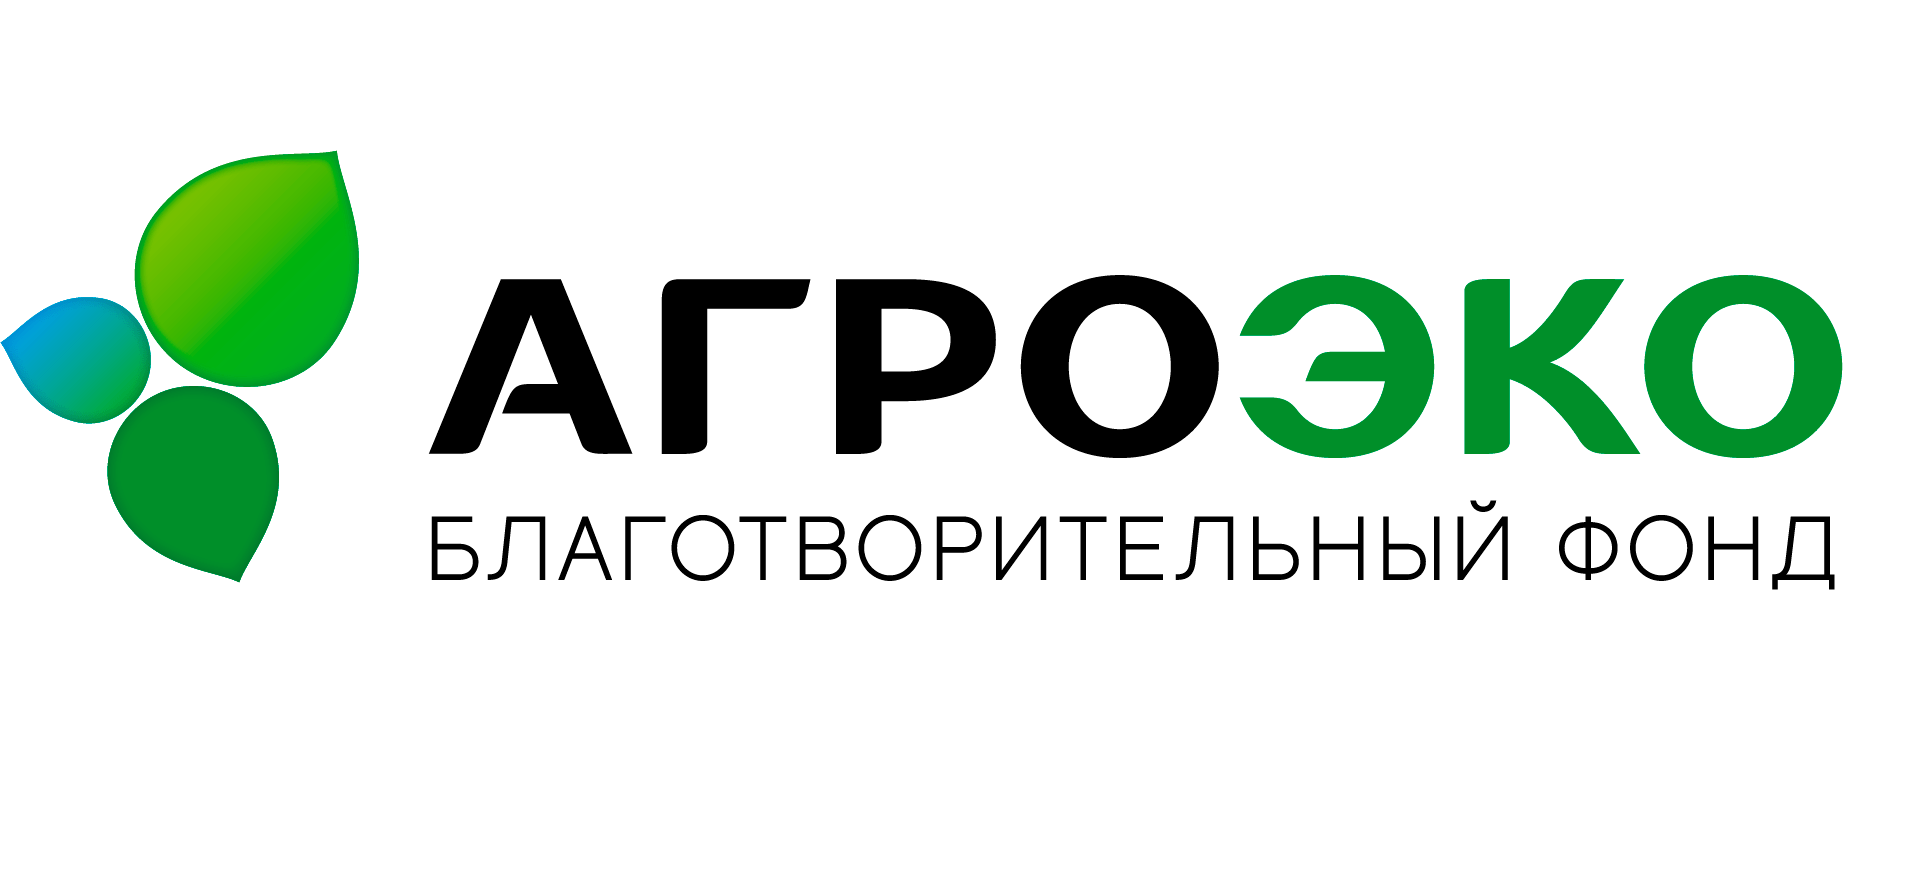 агроэко